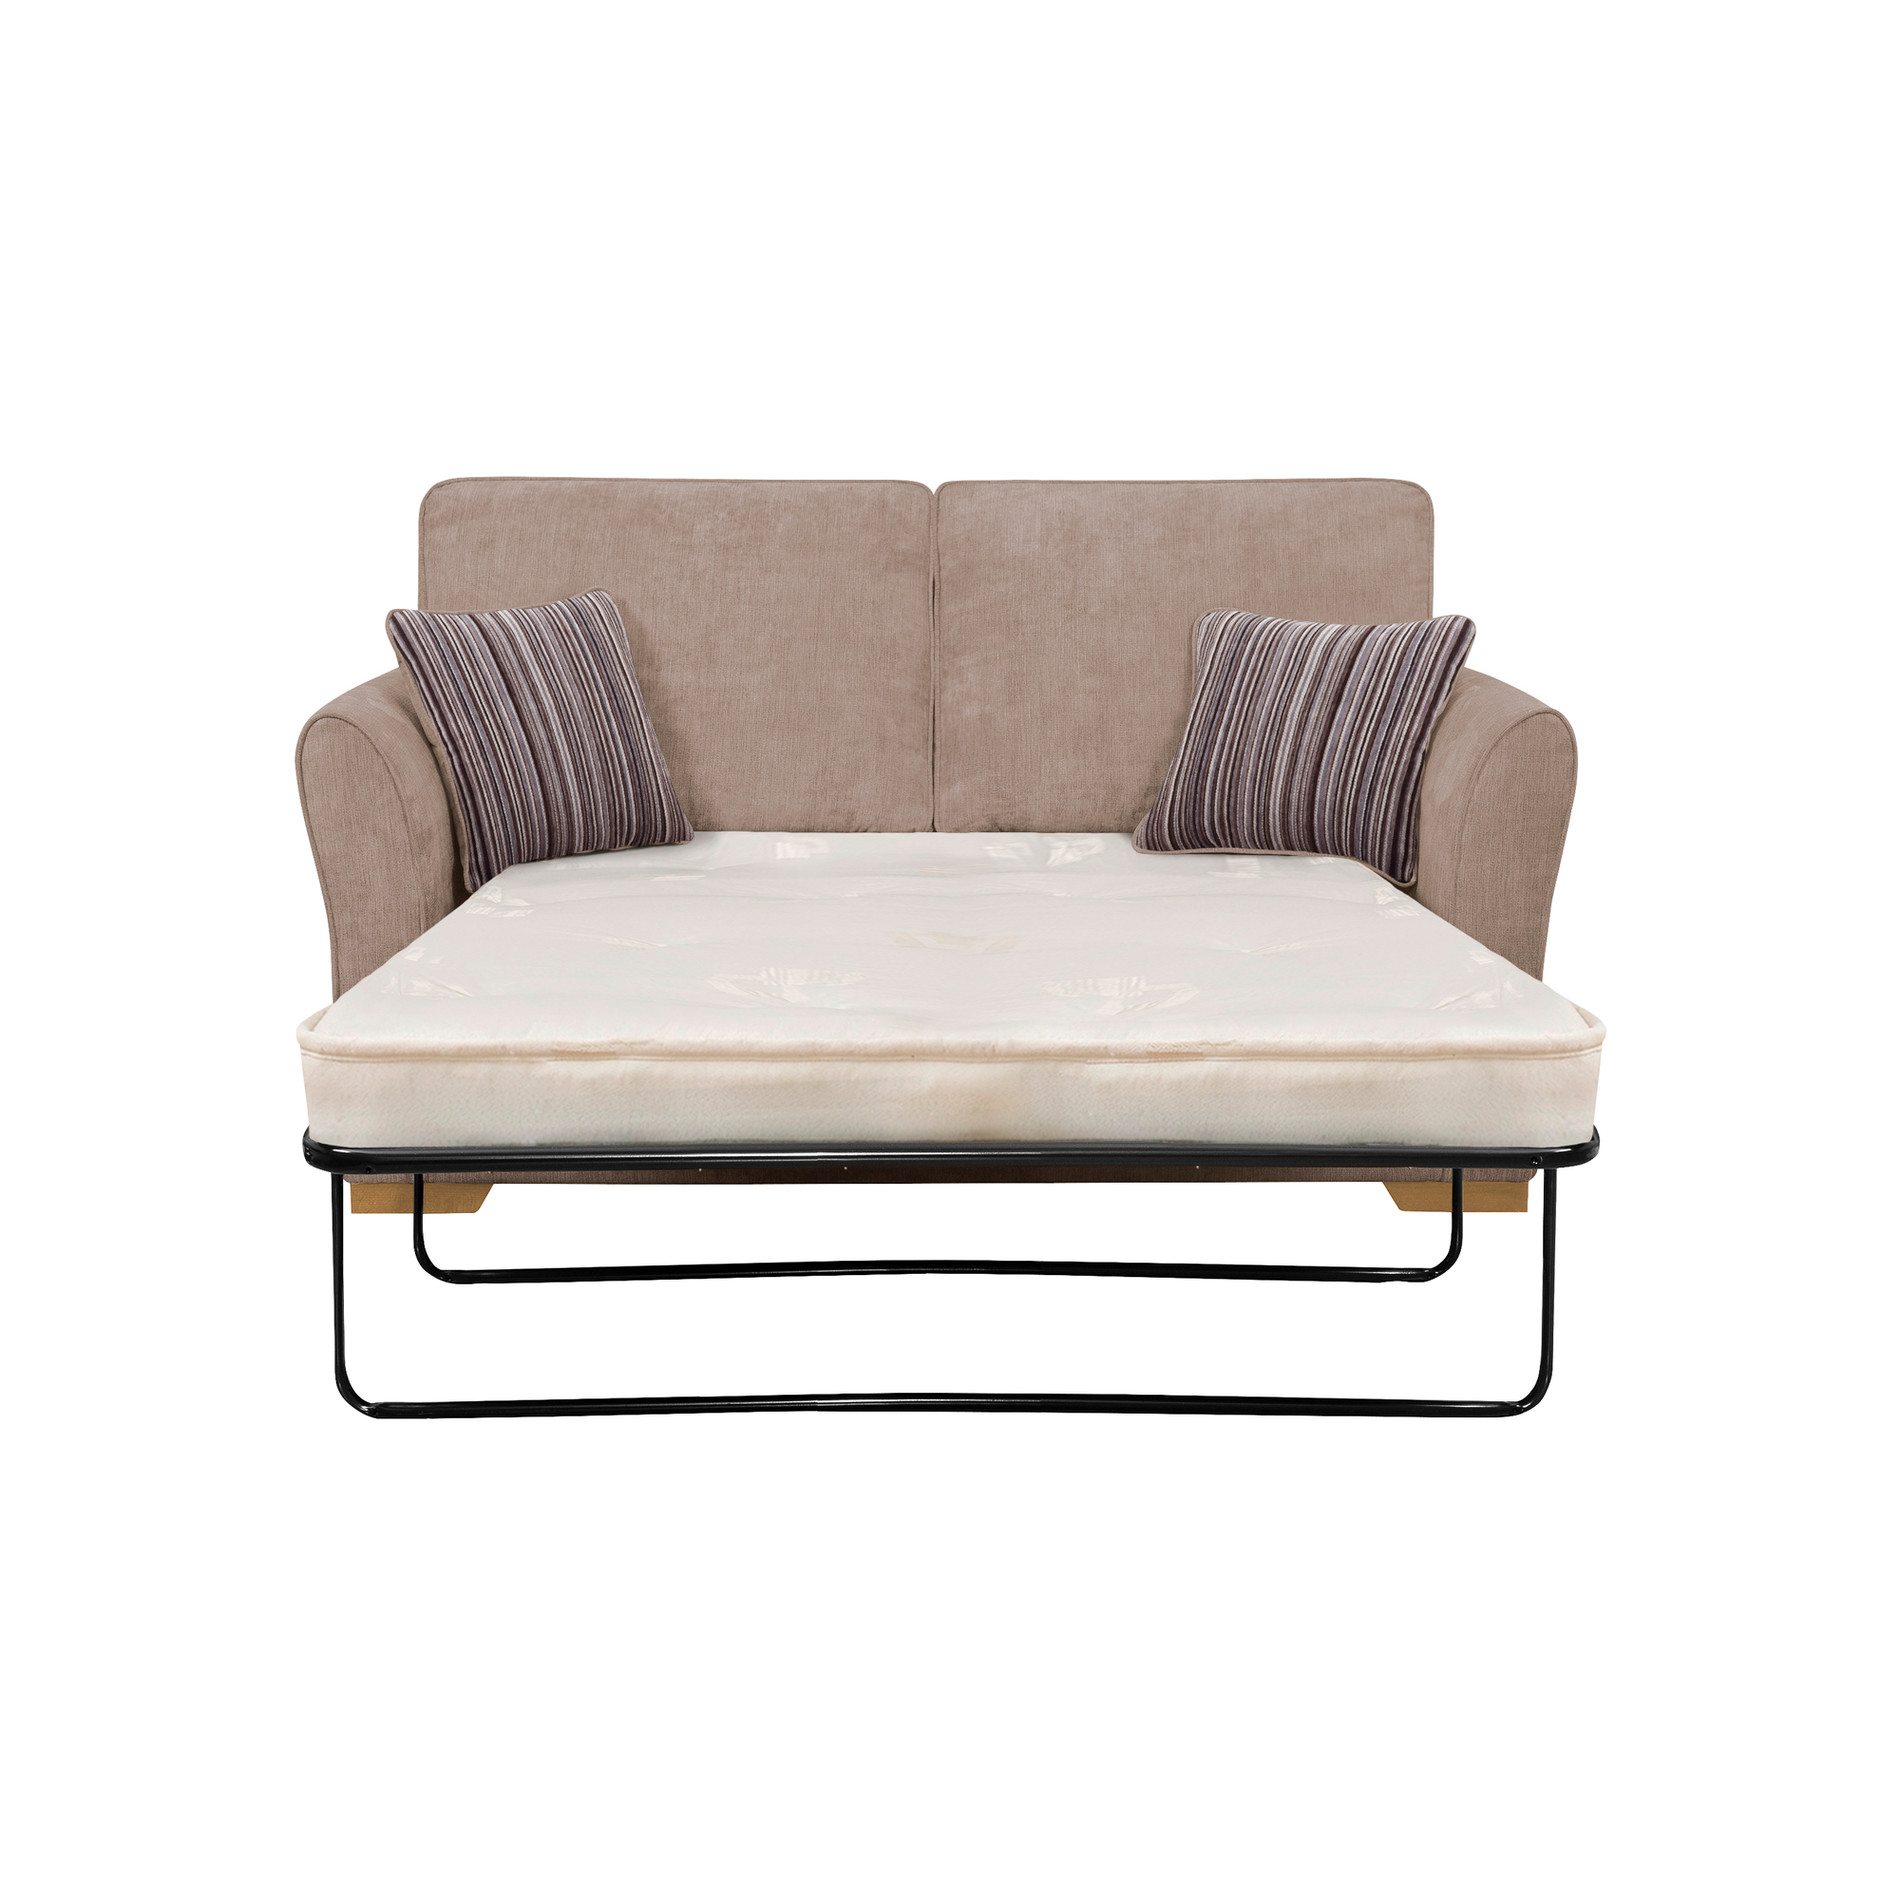 Jasmine 2 seater sofa bed with deluxe mattress in taupe for Sofa bed 5ft